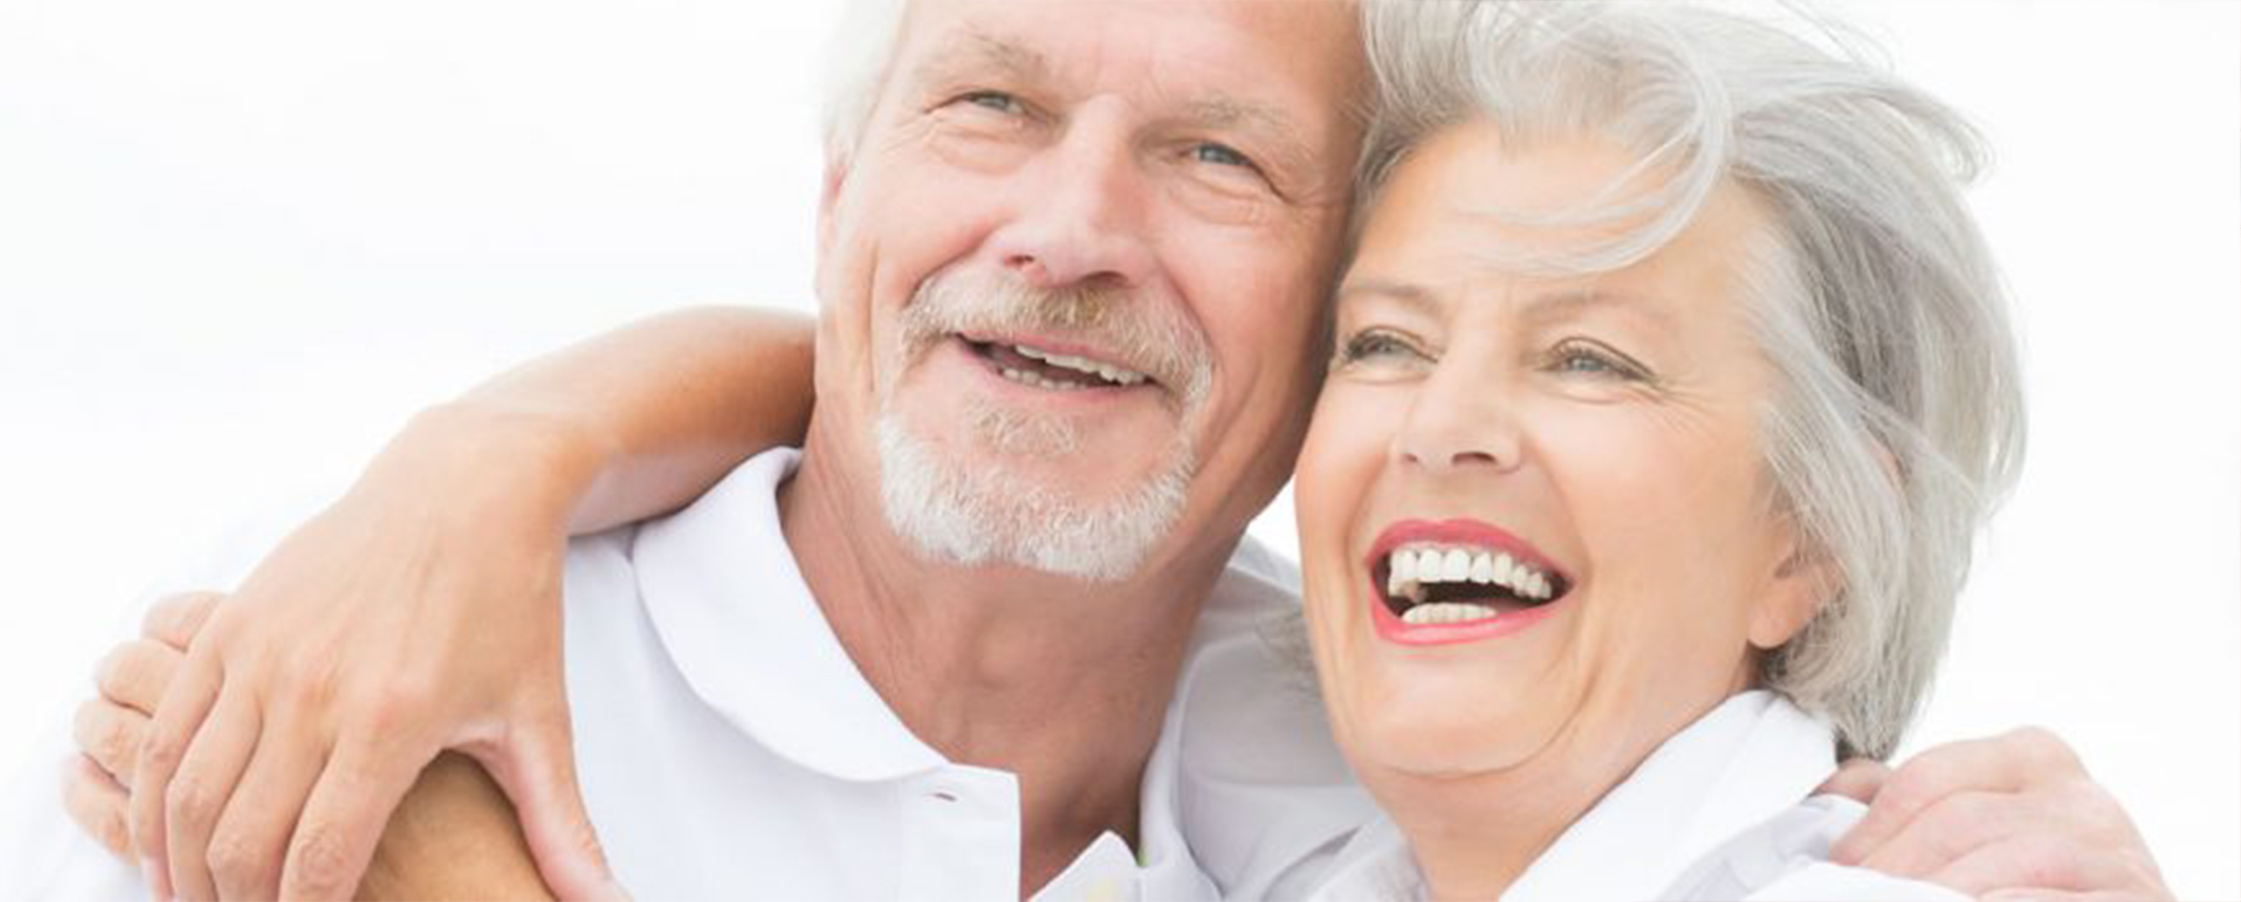 North Ajax Dental | Family Dentists and Cosmetic Dentistry